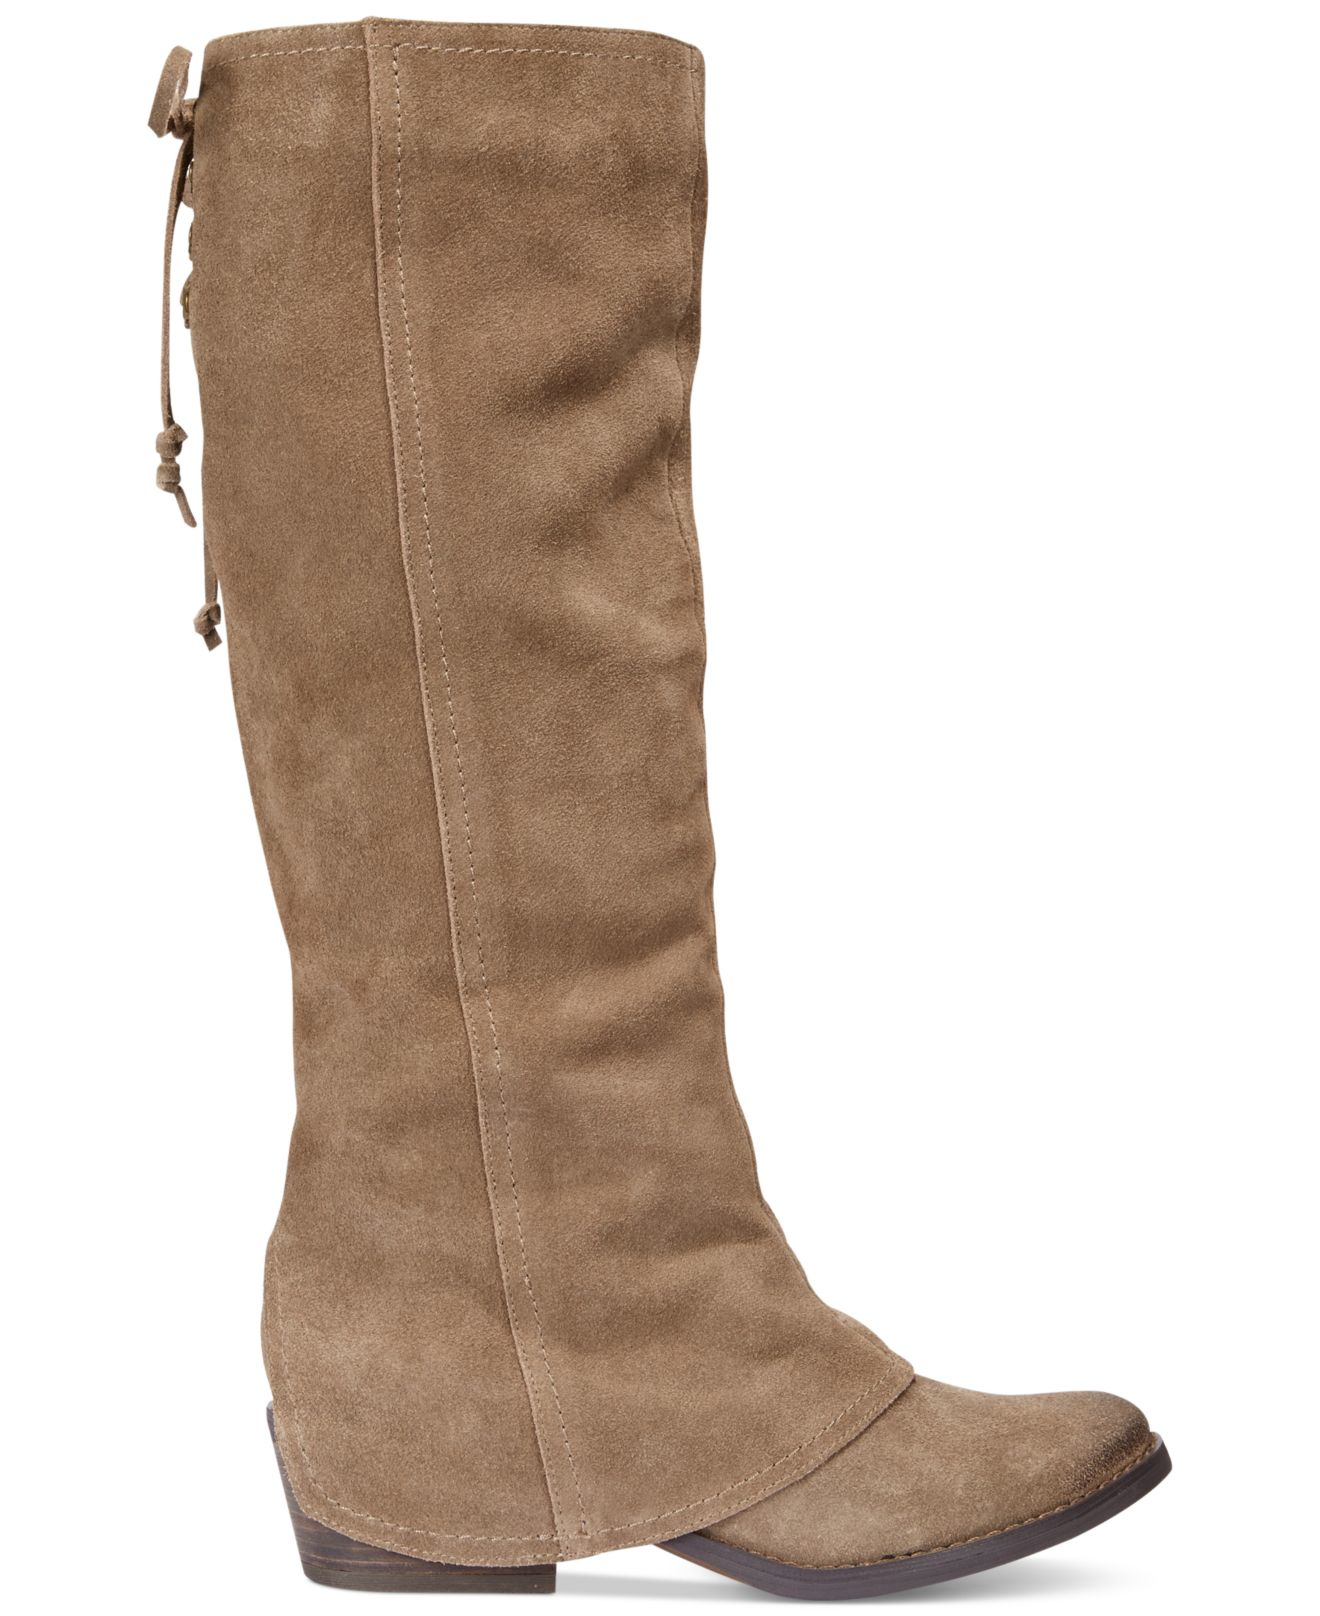 Lyst - Naughty Monkey Arctic Solstice Cuffed Boots in Brown 4604a5ce2423